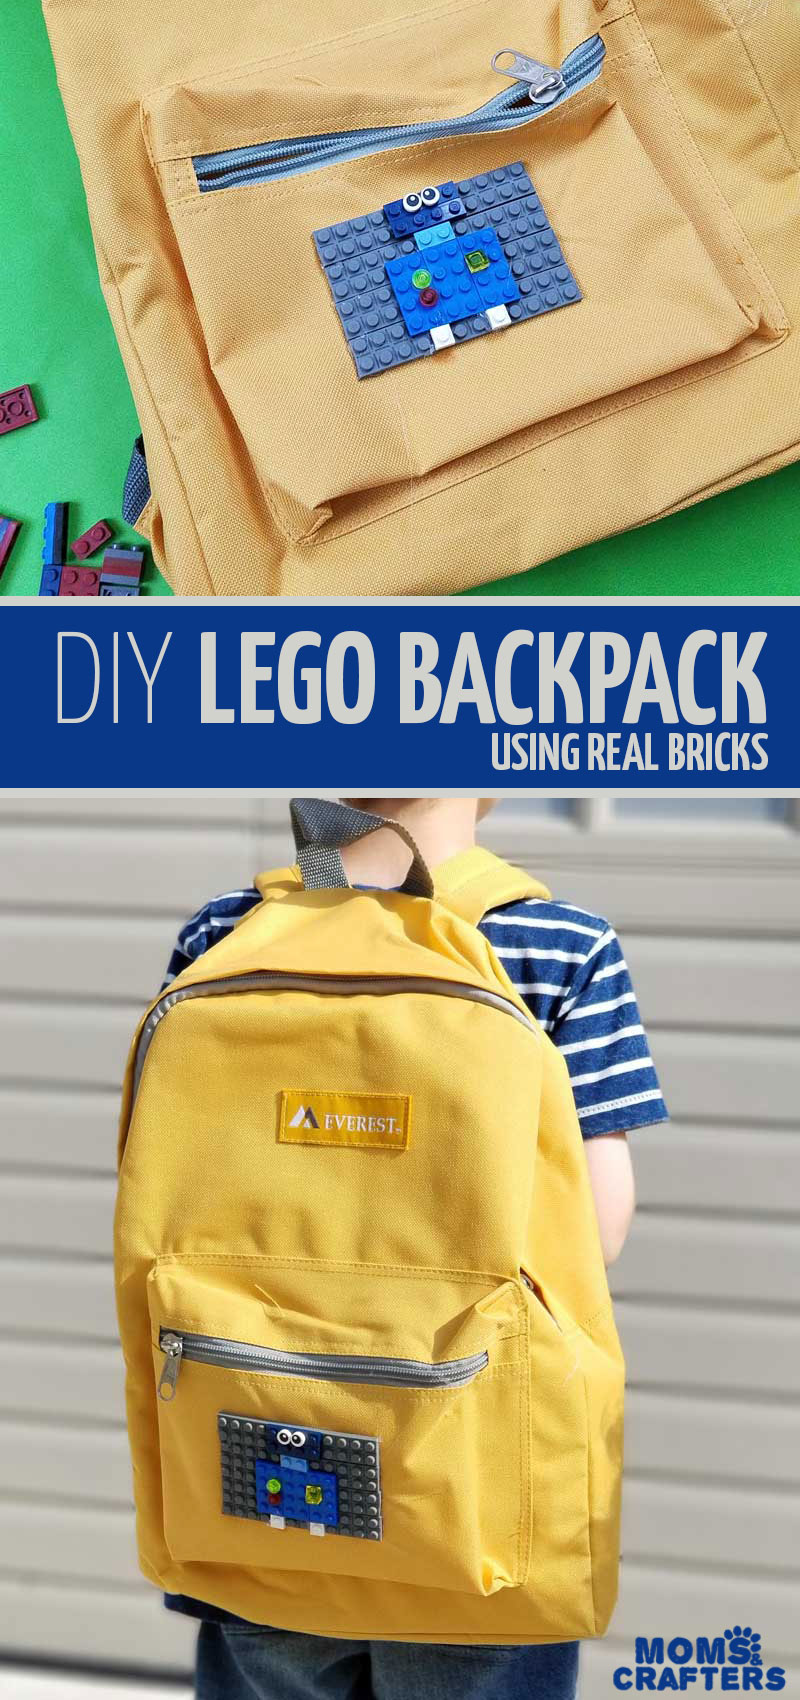 Click to learn how to make your own DIY LEGO backpack with this adorable back to school craft for kids, teens, and tweens! This awesome DIY project for boys and girls is a fun backpack craft to make your own book bag for school #backtoschool #lego #crafts